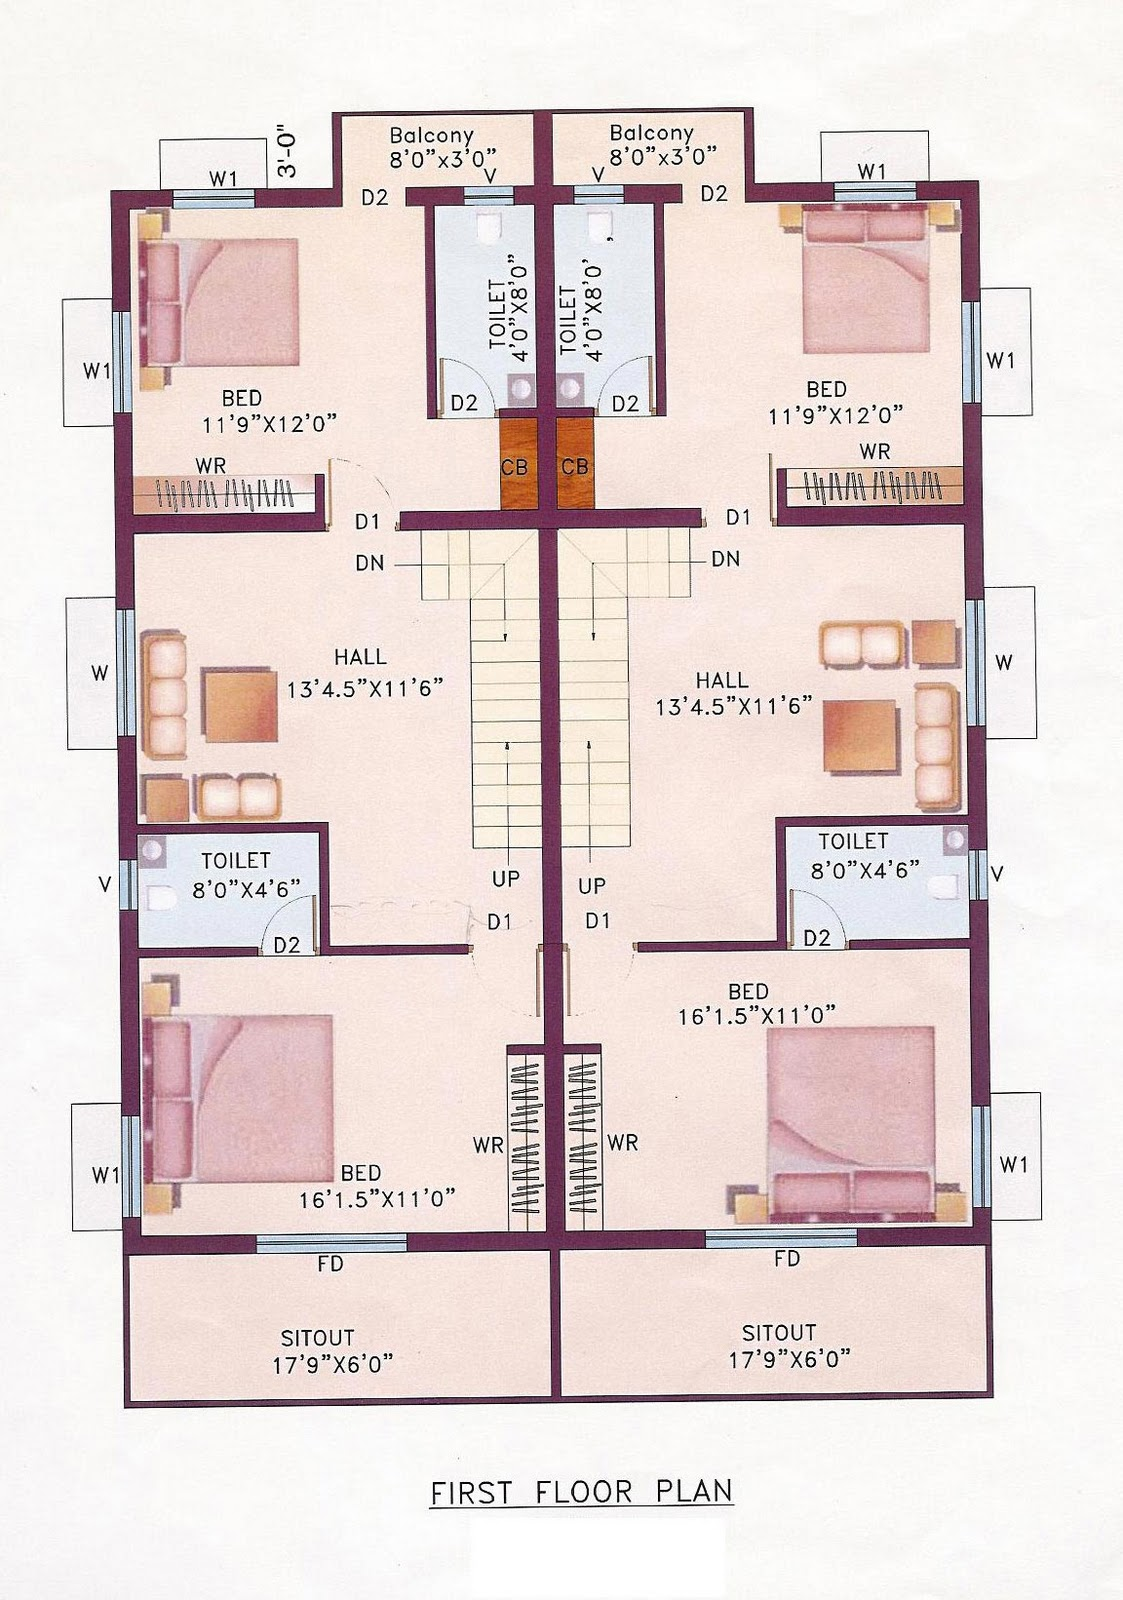 House plans indian floor plans for Second floor house plans indian pattern